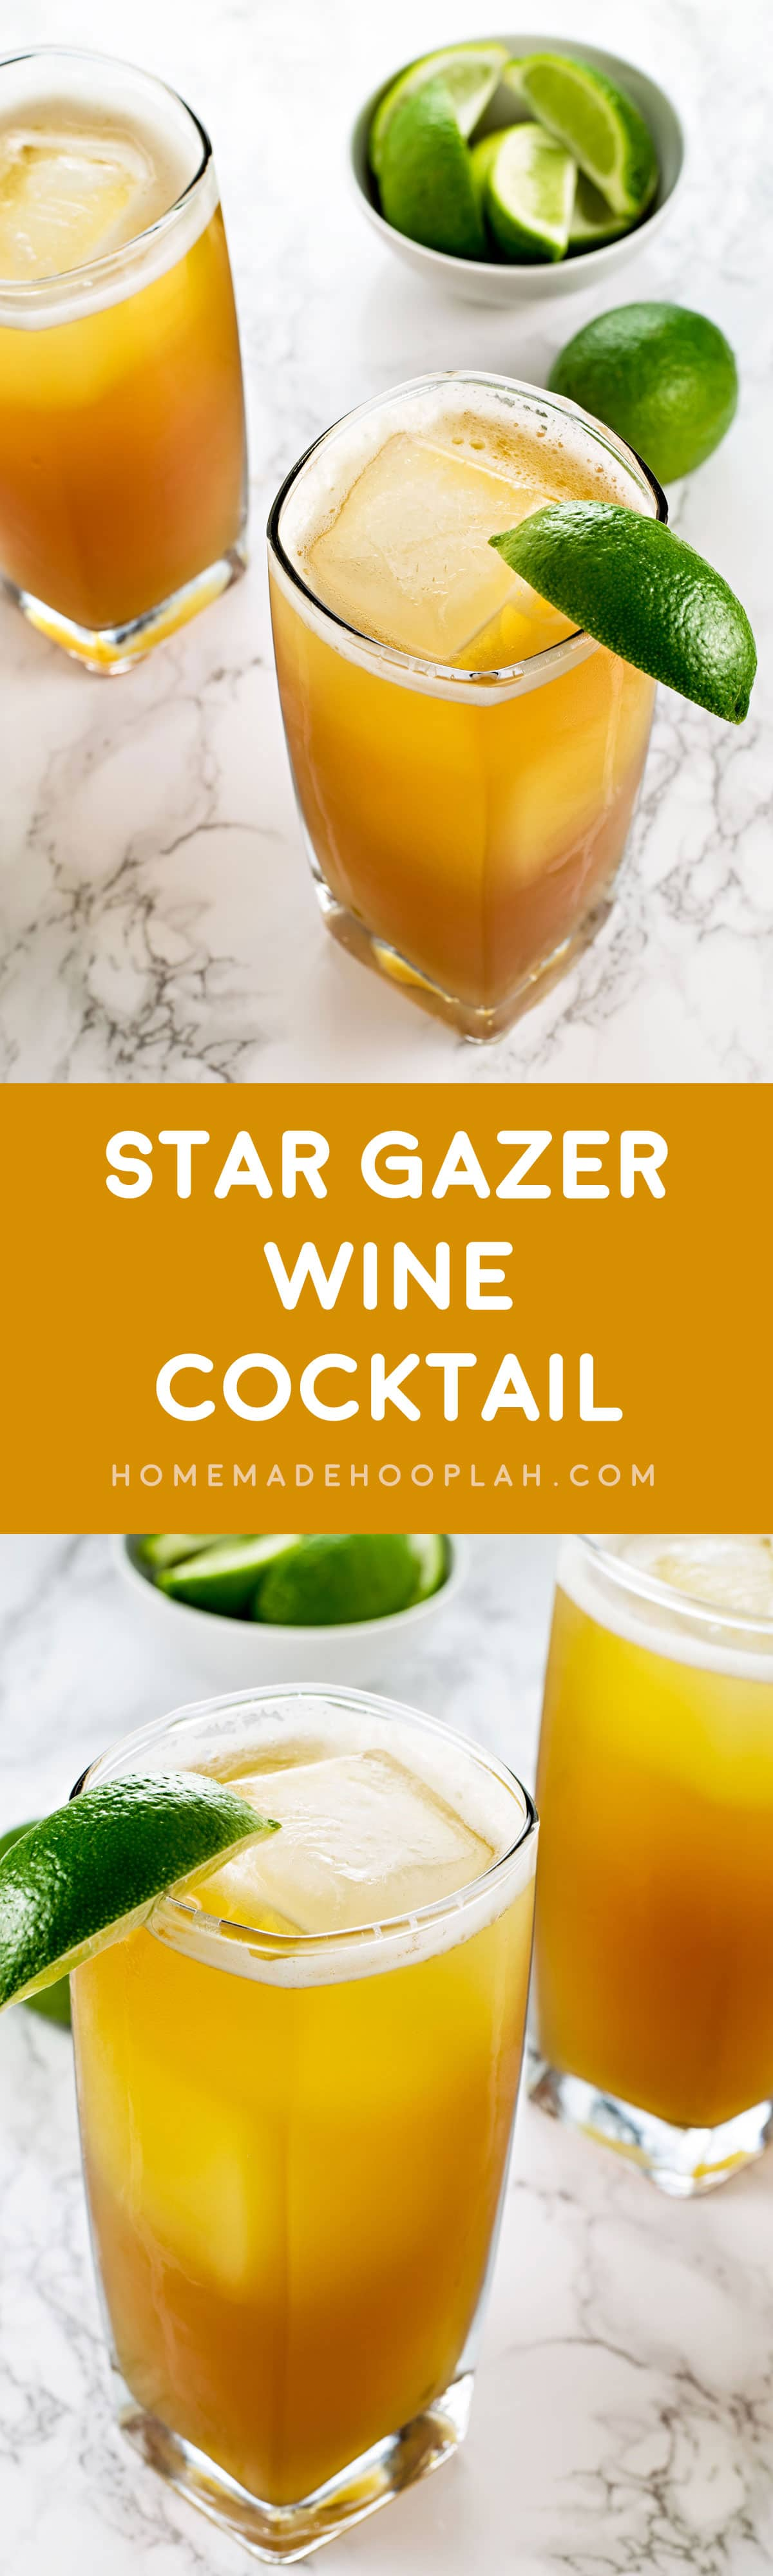 Star Gazer Wine Cocktail! A soft and sweet cocktail flavored with vanilla, pineapple, dark rum, and your choice of white wine. | HomemadeHooplah.com